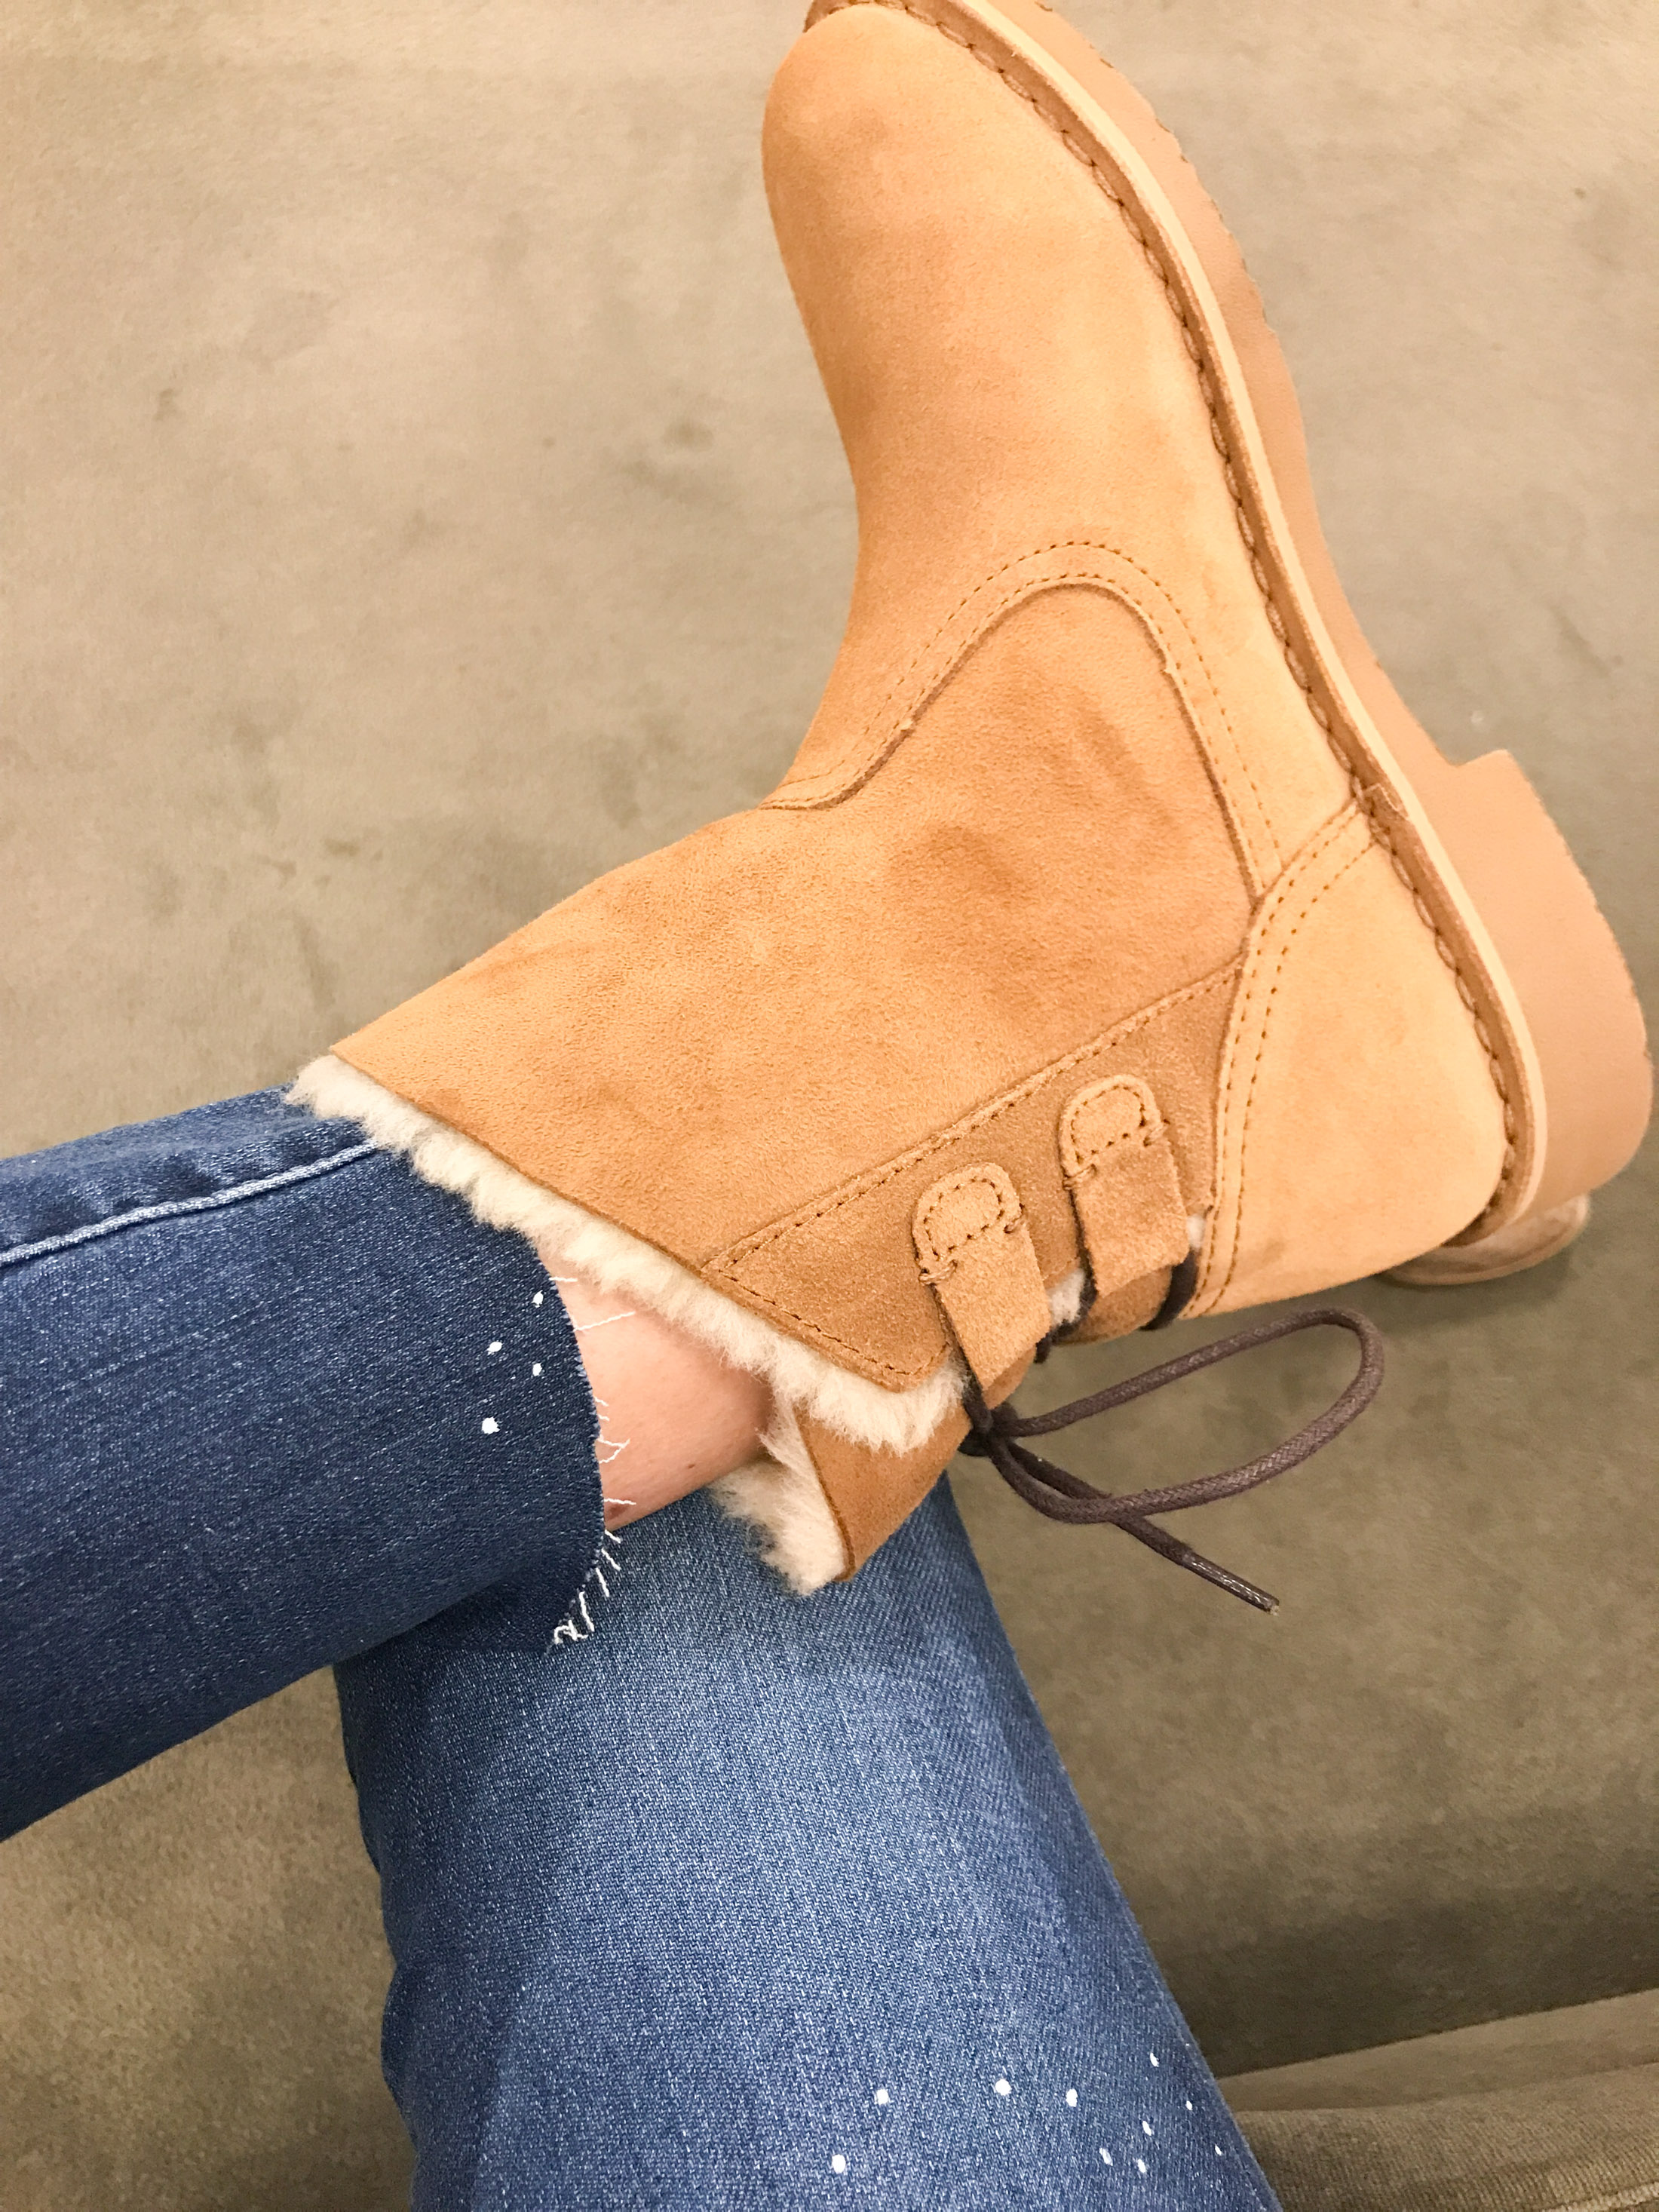 Nordstrom Anniversary Sale  Shoes and Boots - The Mom Edit 29ea52ca21a1